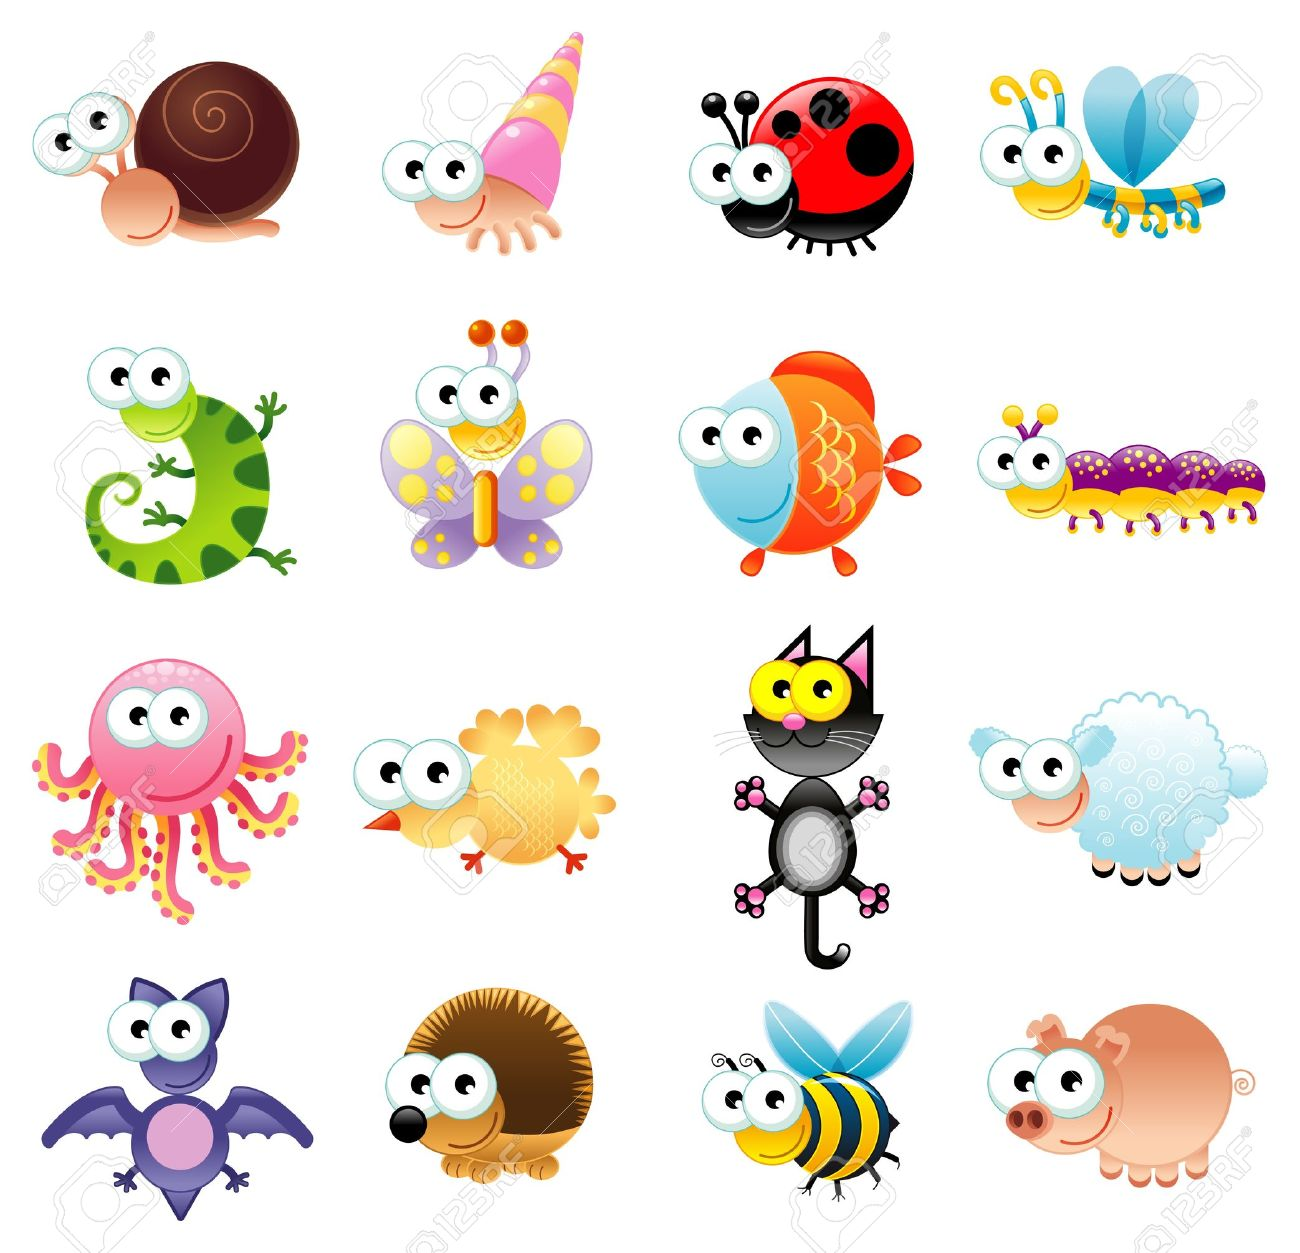 Family of funny animals. Cartoon and  isolated objects. Stock Vector - 15373887